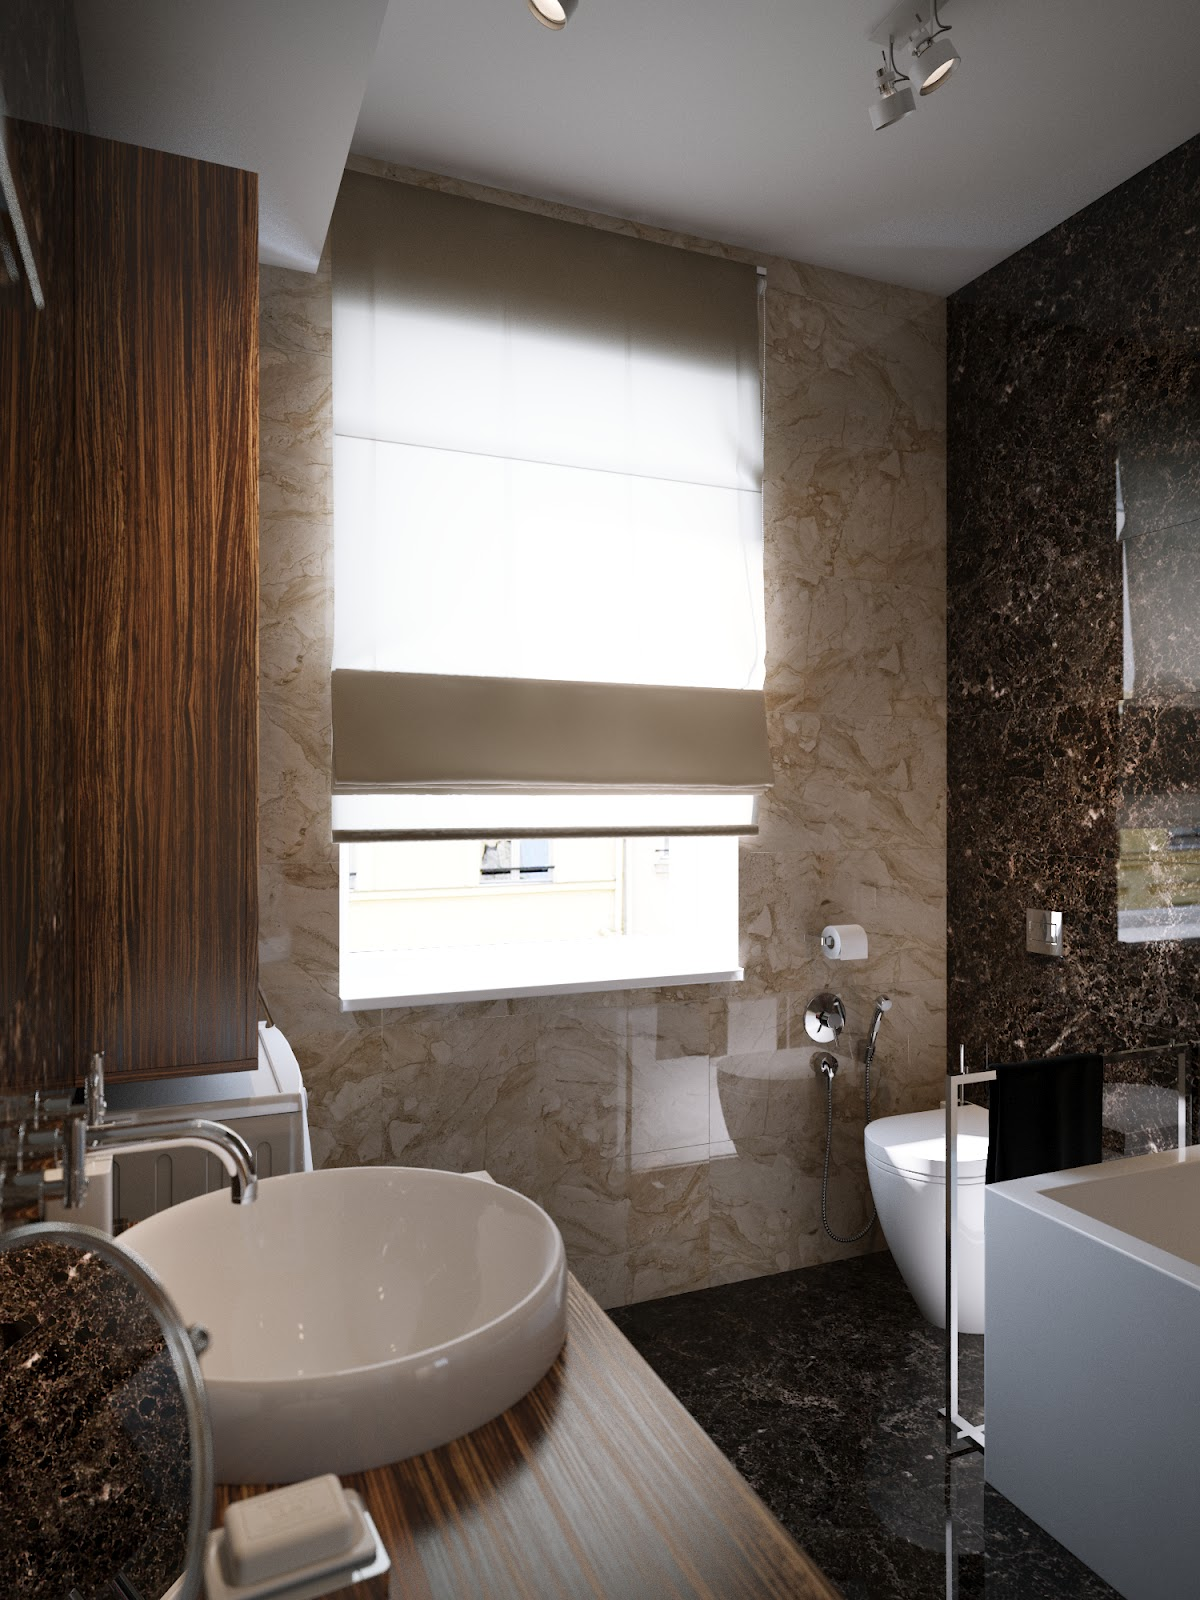 Modern bathroom design scheme interior design ideas for Contemporary bathroom interior design